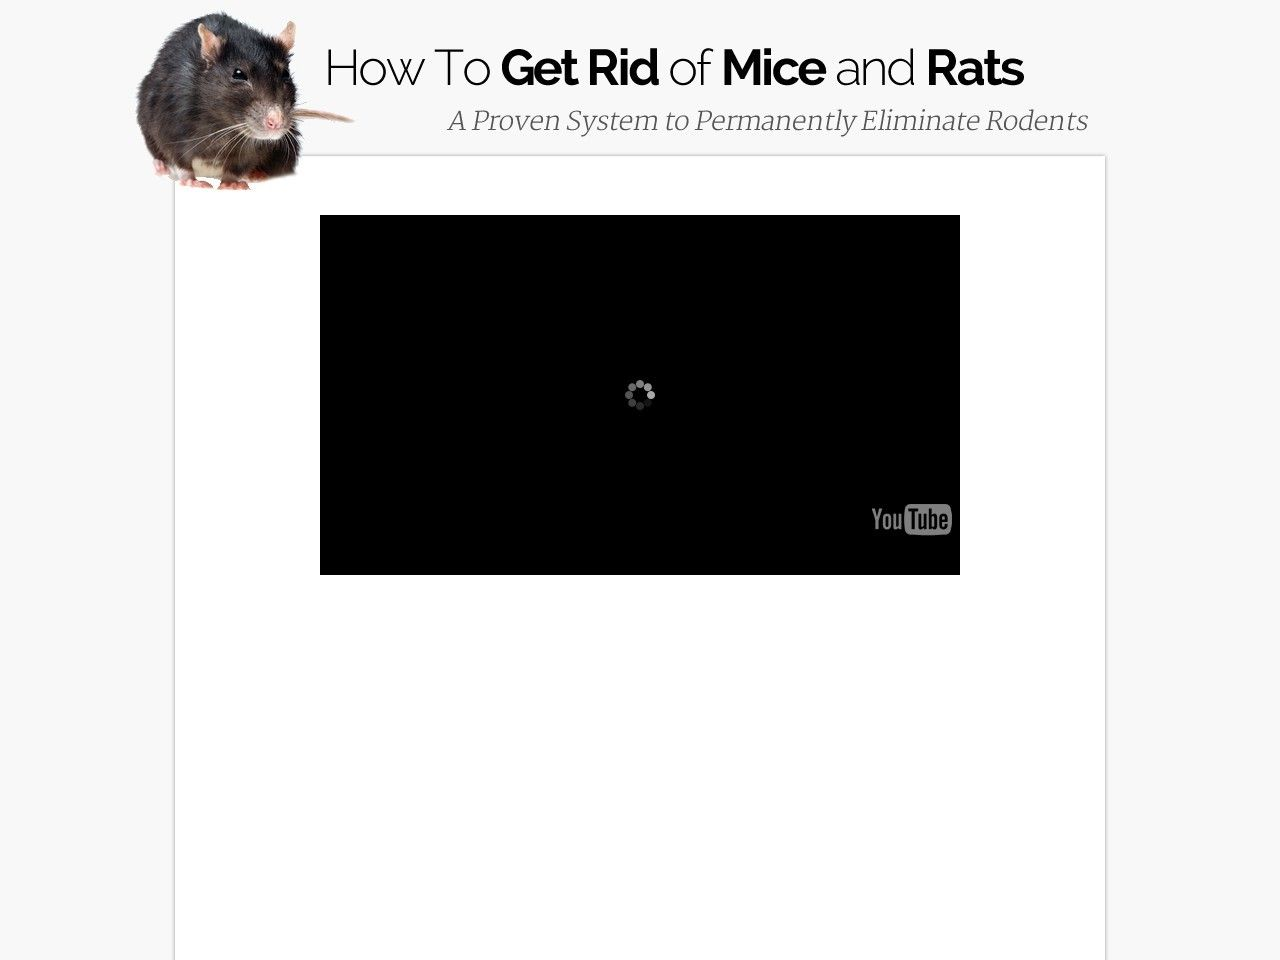 How To Get Rid Of Mice And Rats - Eliminate Rodents Review Get Full Review : http://scamereviews.typepad.com/blog/2013/12/how-to-get-rid-of-mice-and-rats-eliminate-rodents.html